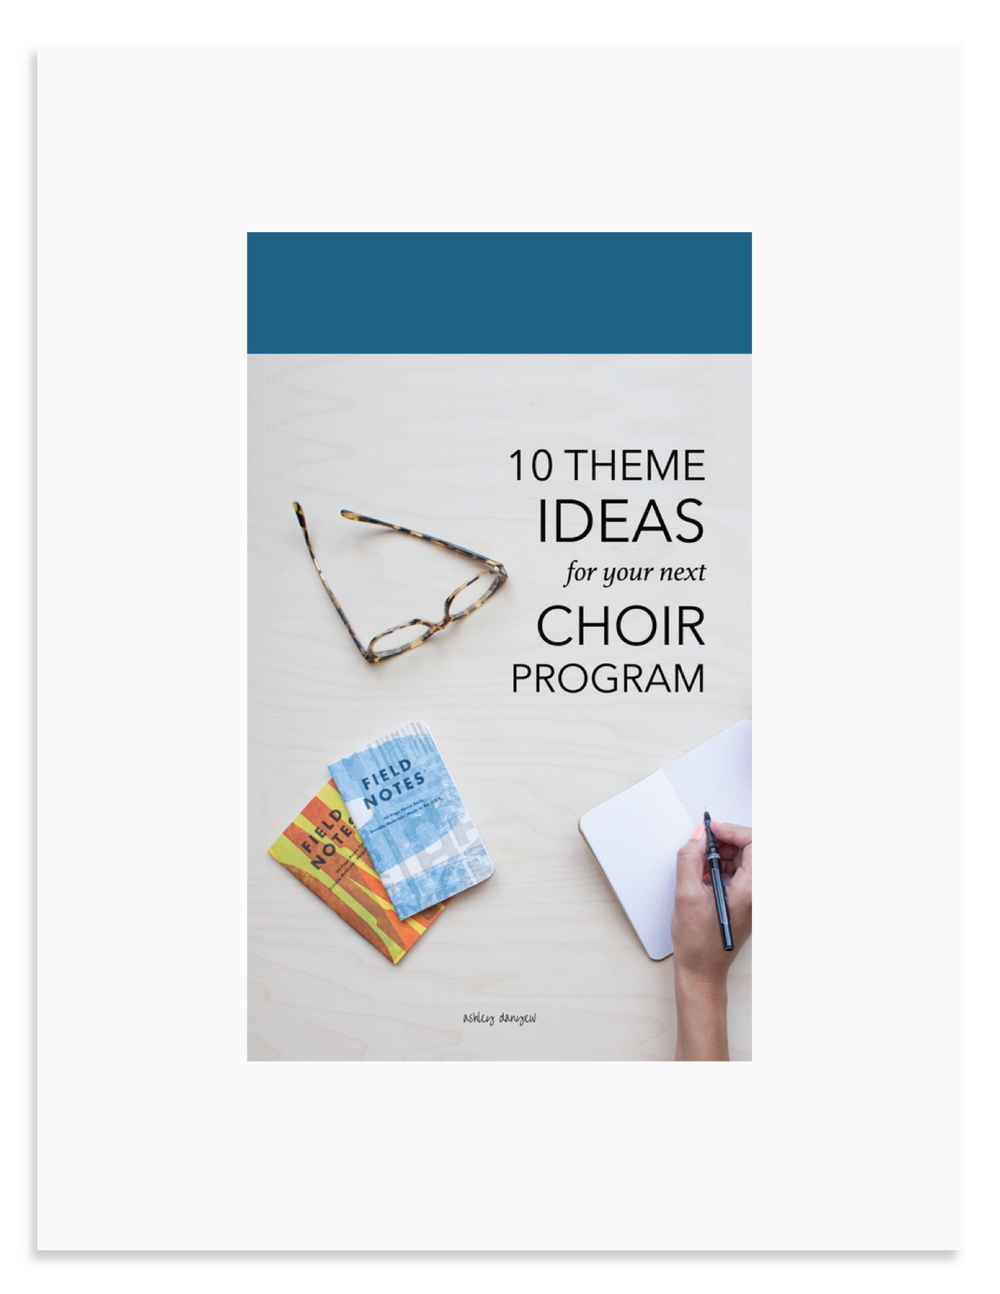 10 Theme Ideas for Your Next Choir Program Workbook-23.png